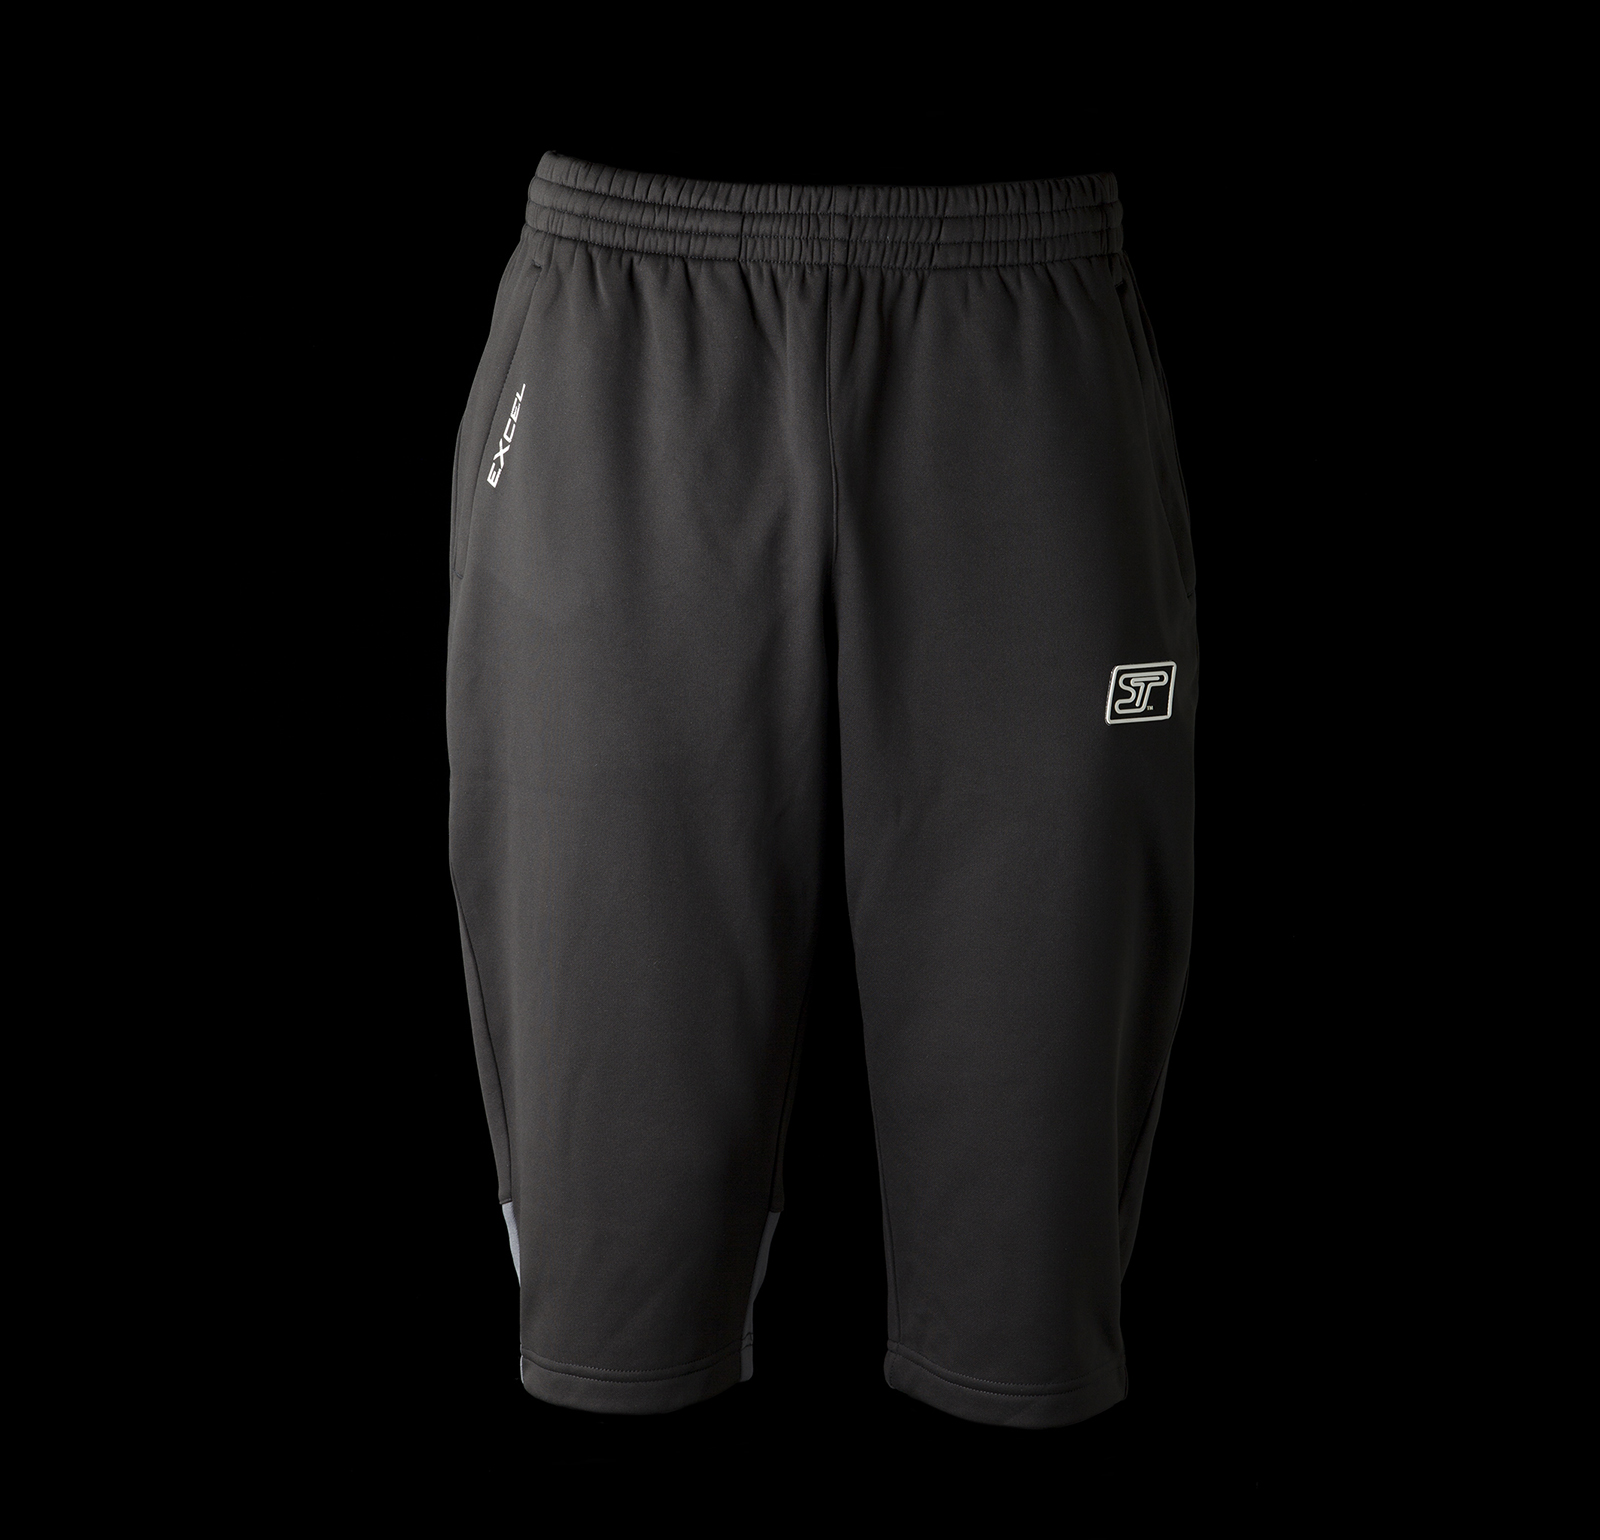 excel-3-4-pant-promo-01